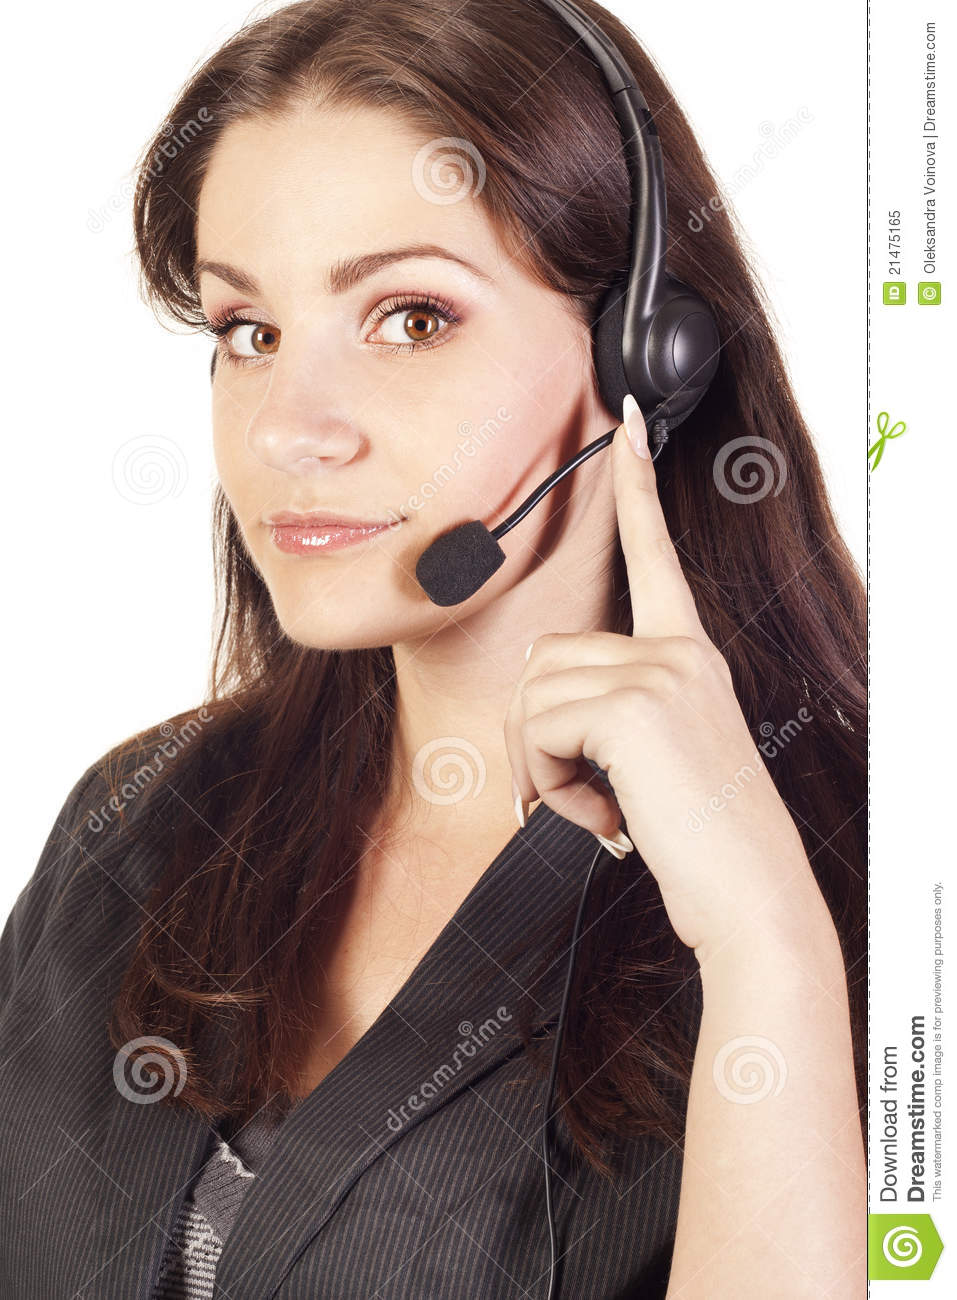 Young operator with headset